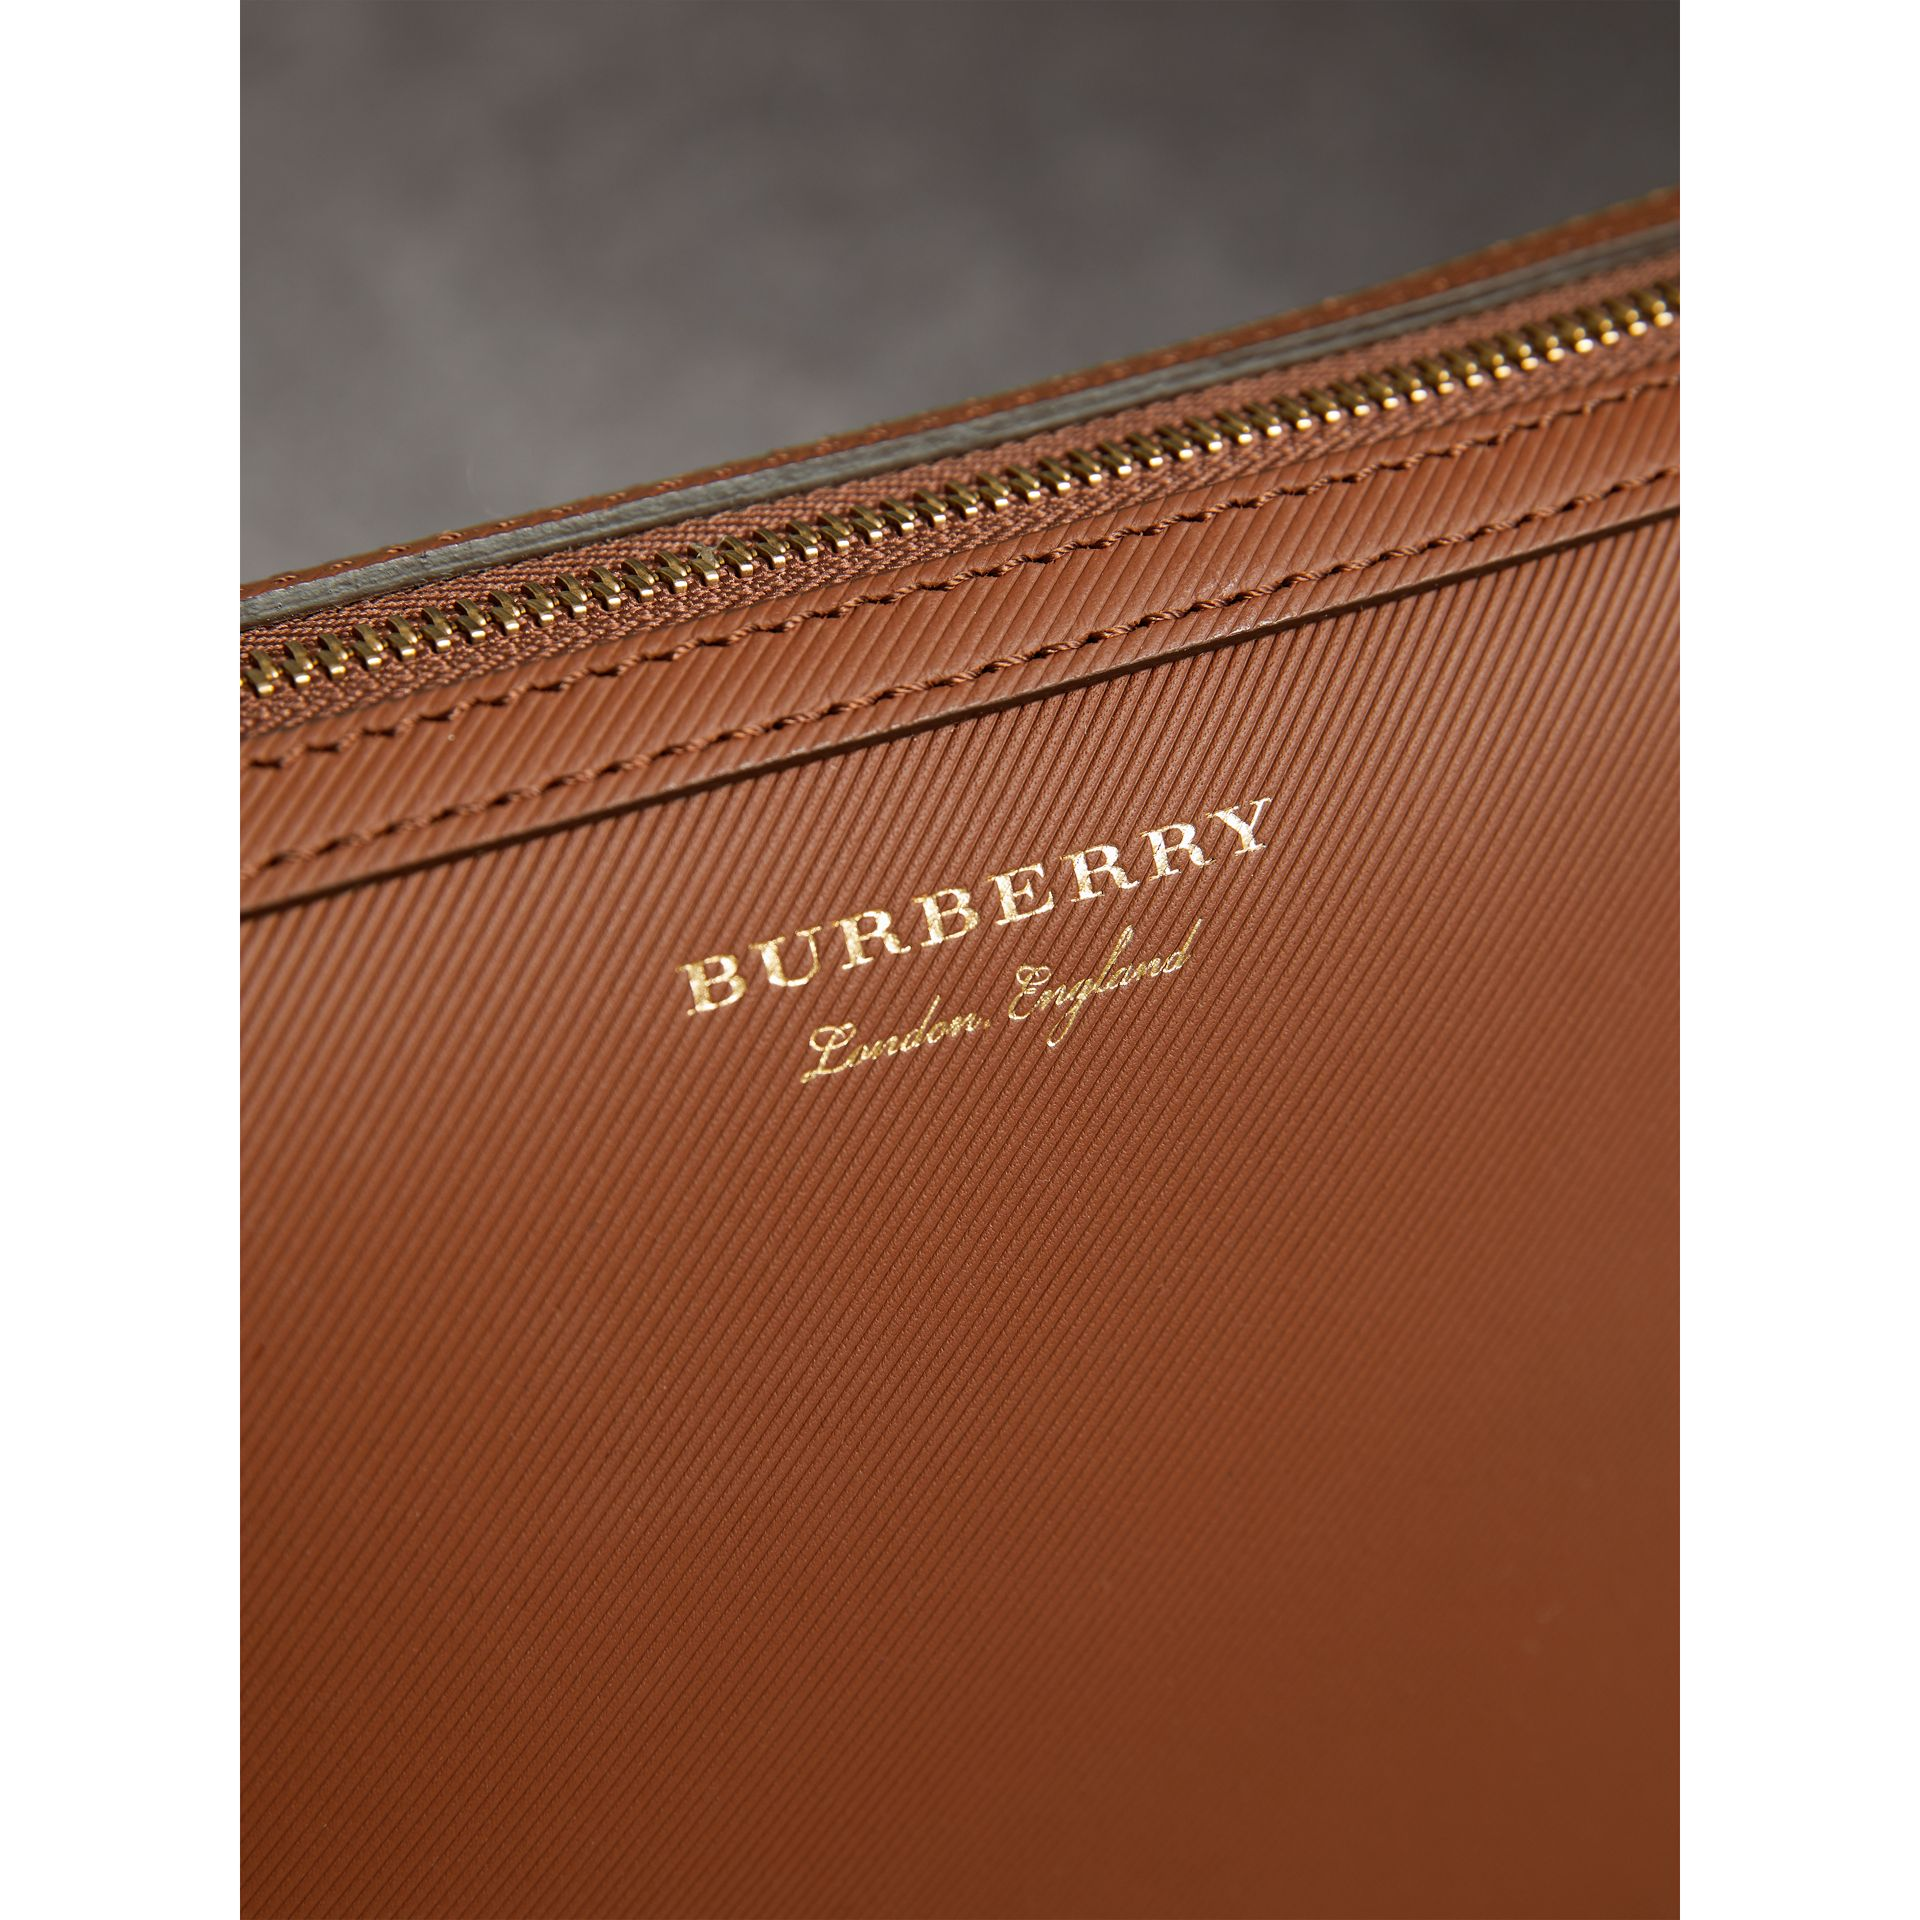 Trench Leather Pouch in Tan - Men | Burberry Hong Kong - gallery image 1